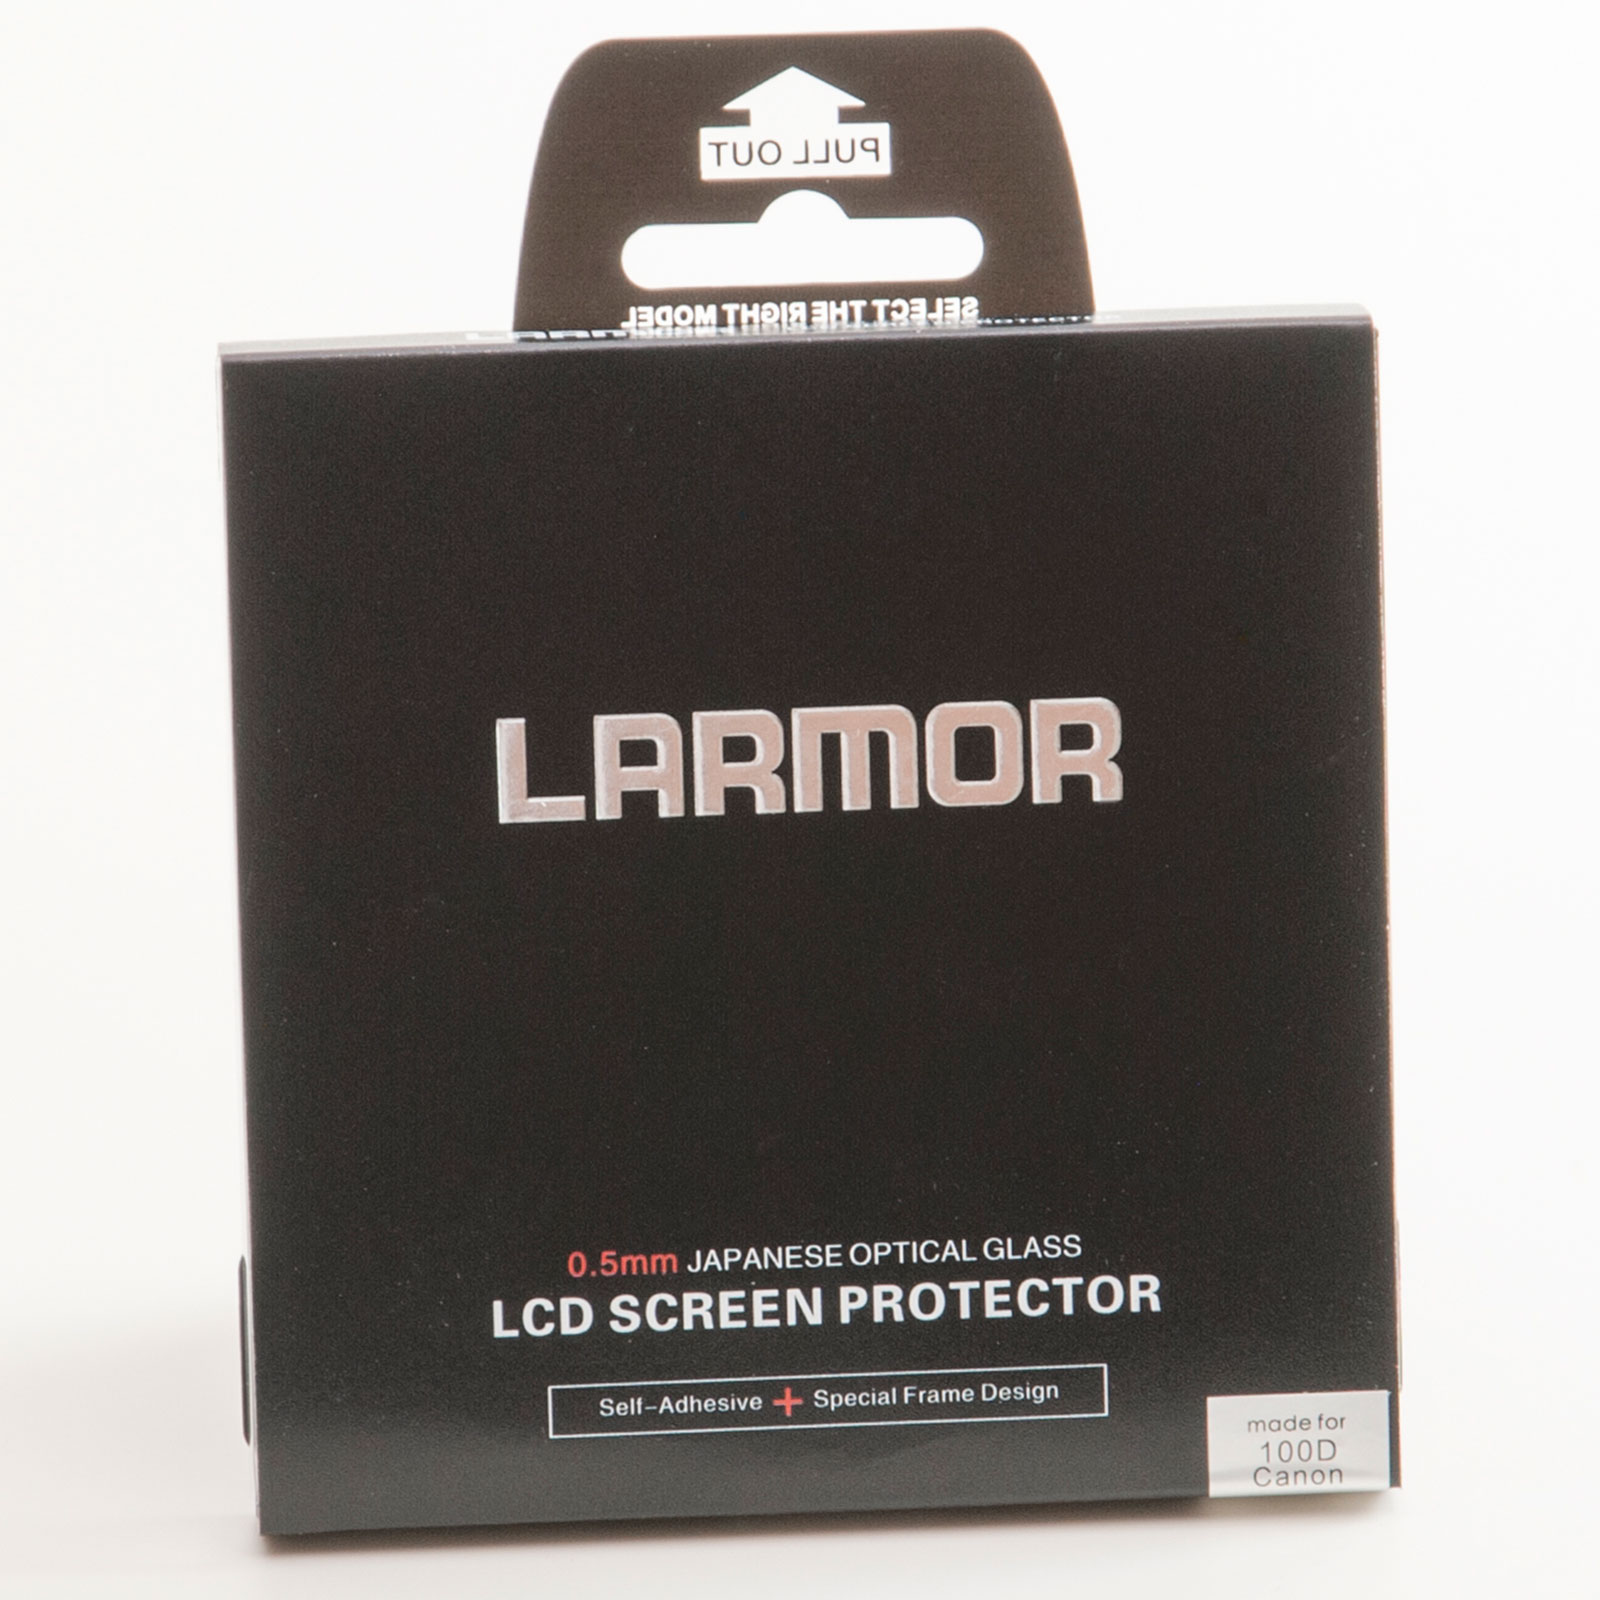 GGS Larmor Glass Screen Protector for Canon 100D Camera - Self-Adhesive